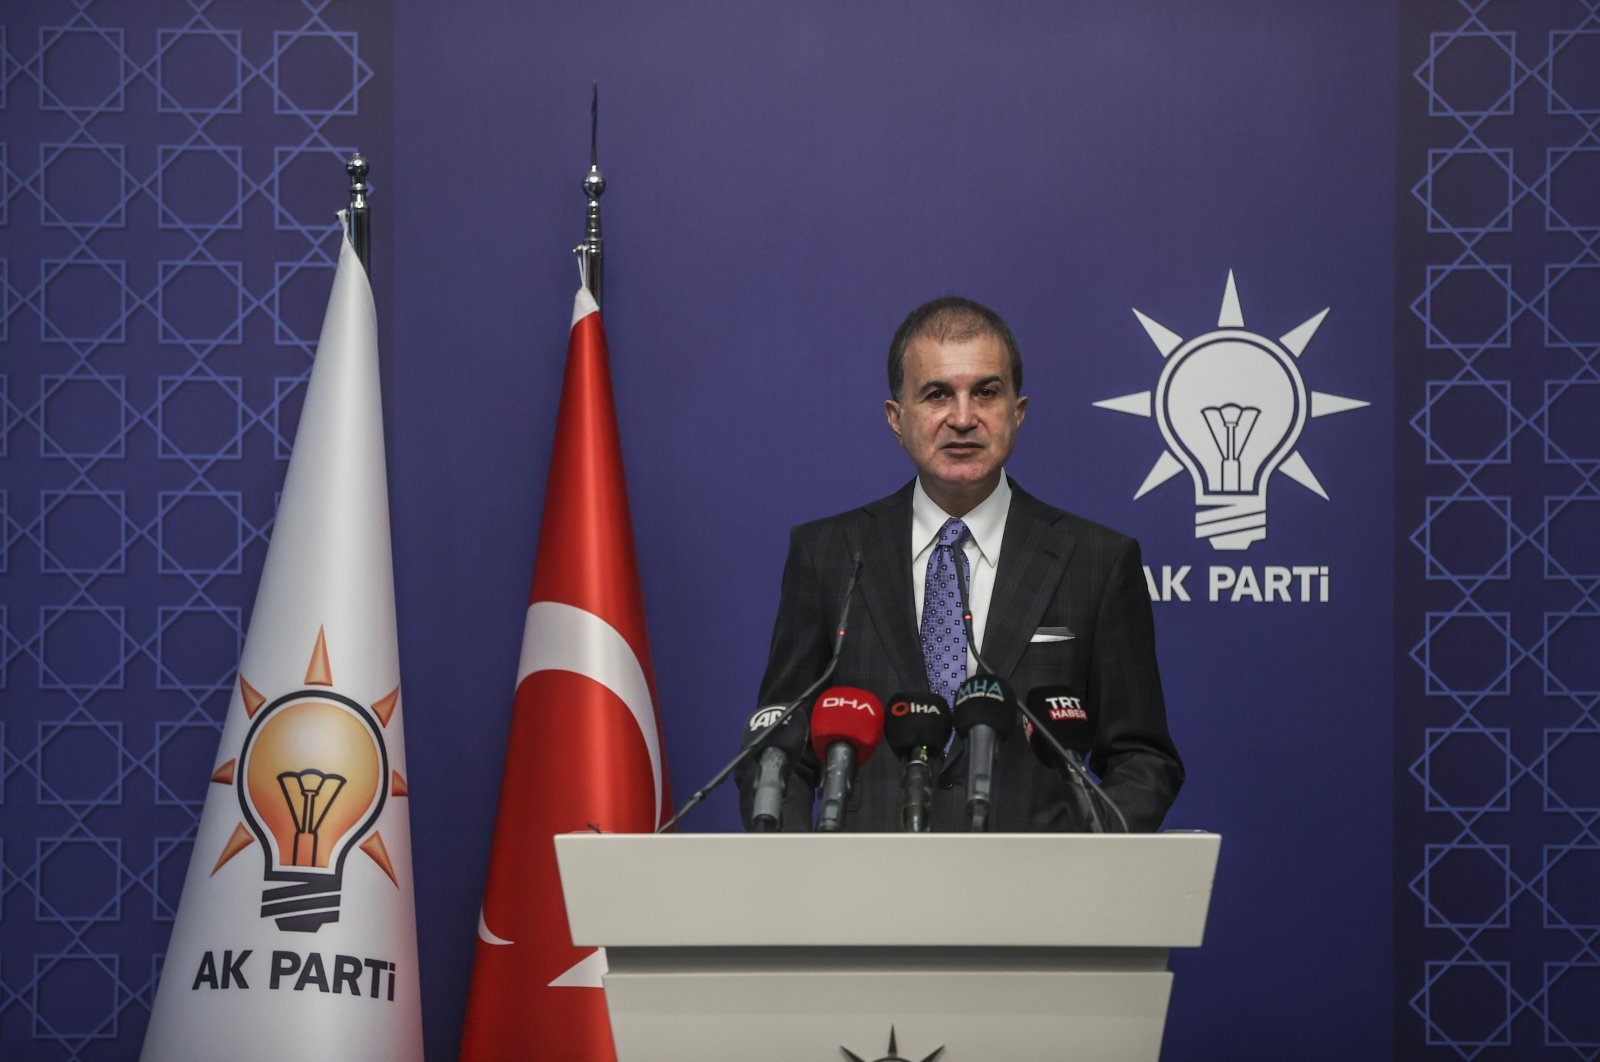 The ruling Justice and Development Party (AK Party) Spokesperson Ömer Çelik speaks at a press conference in the capital Ankara, Turkey, June 28, 2021. (AA Photo)